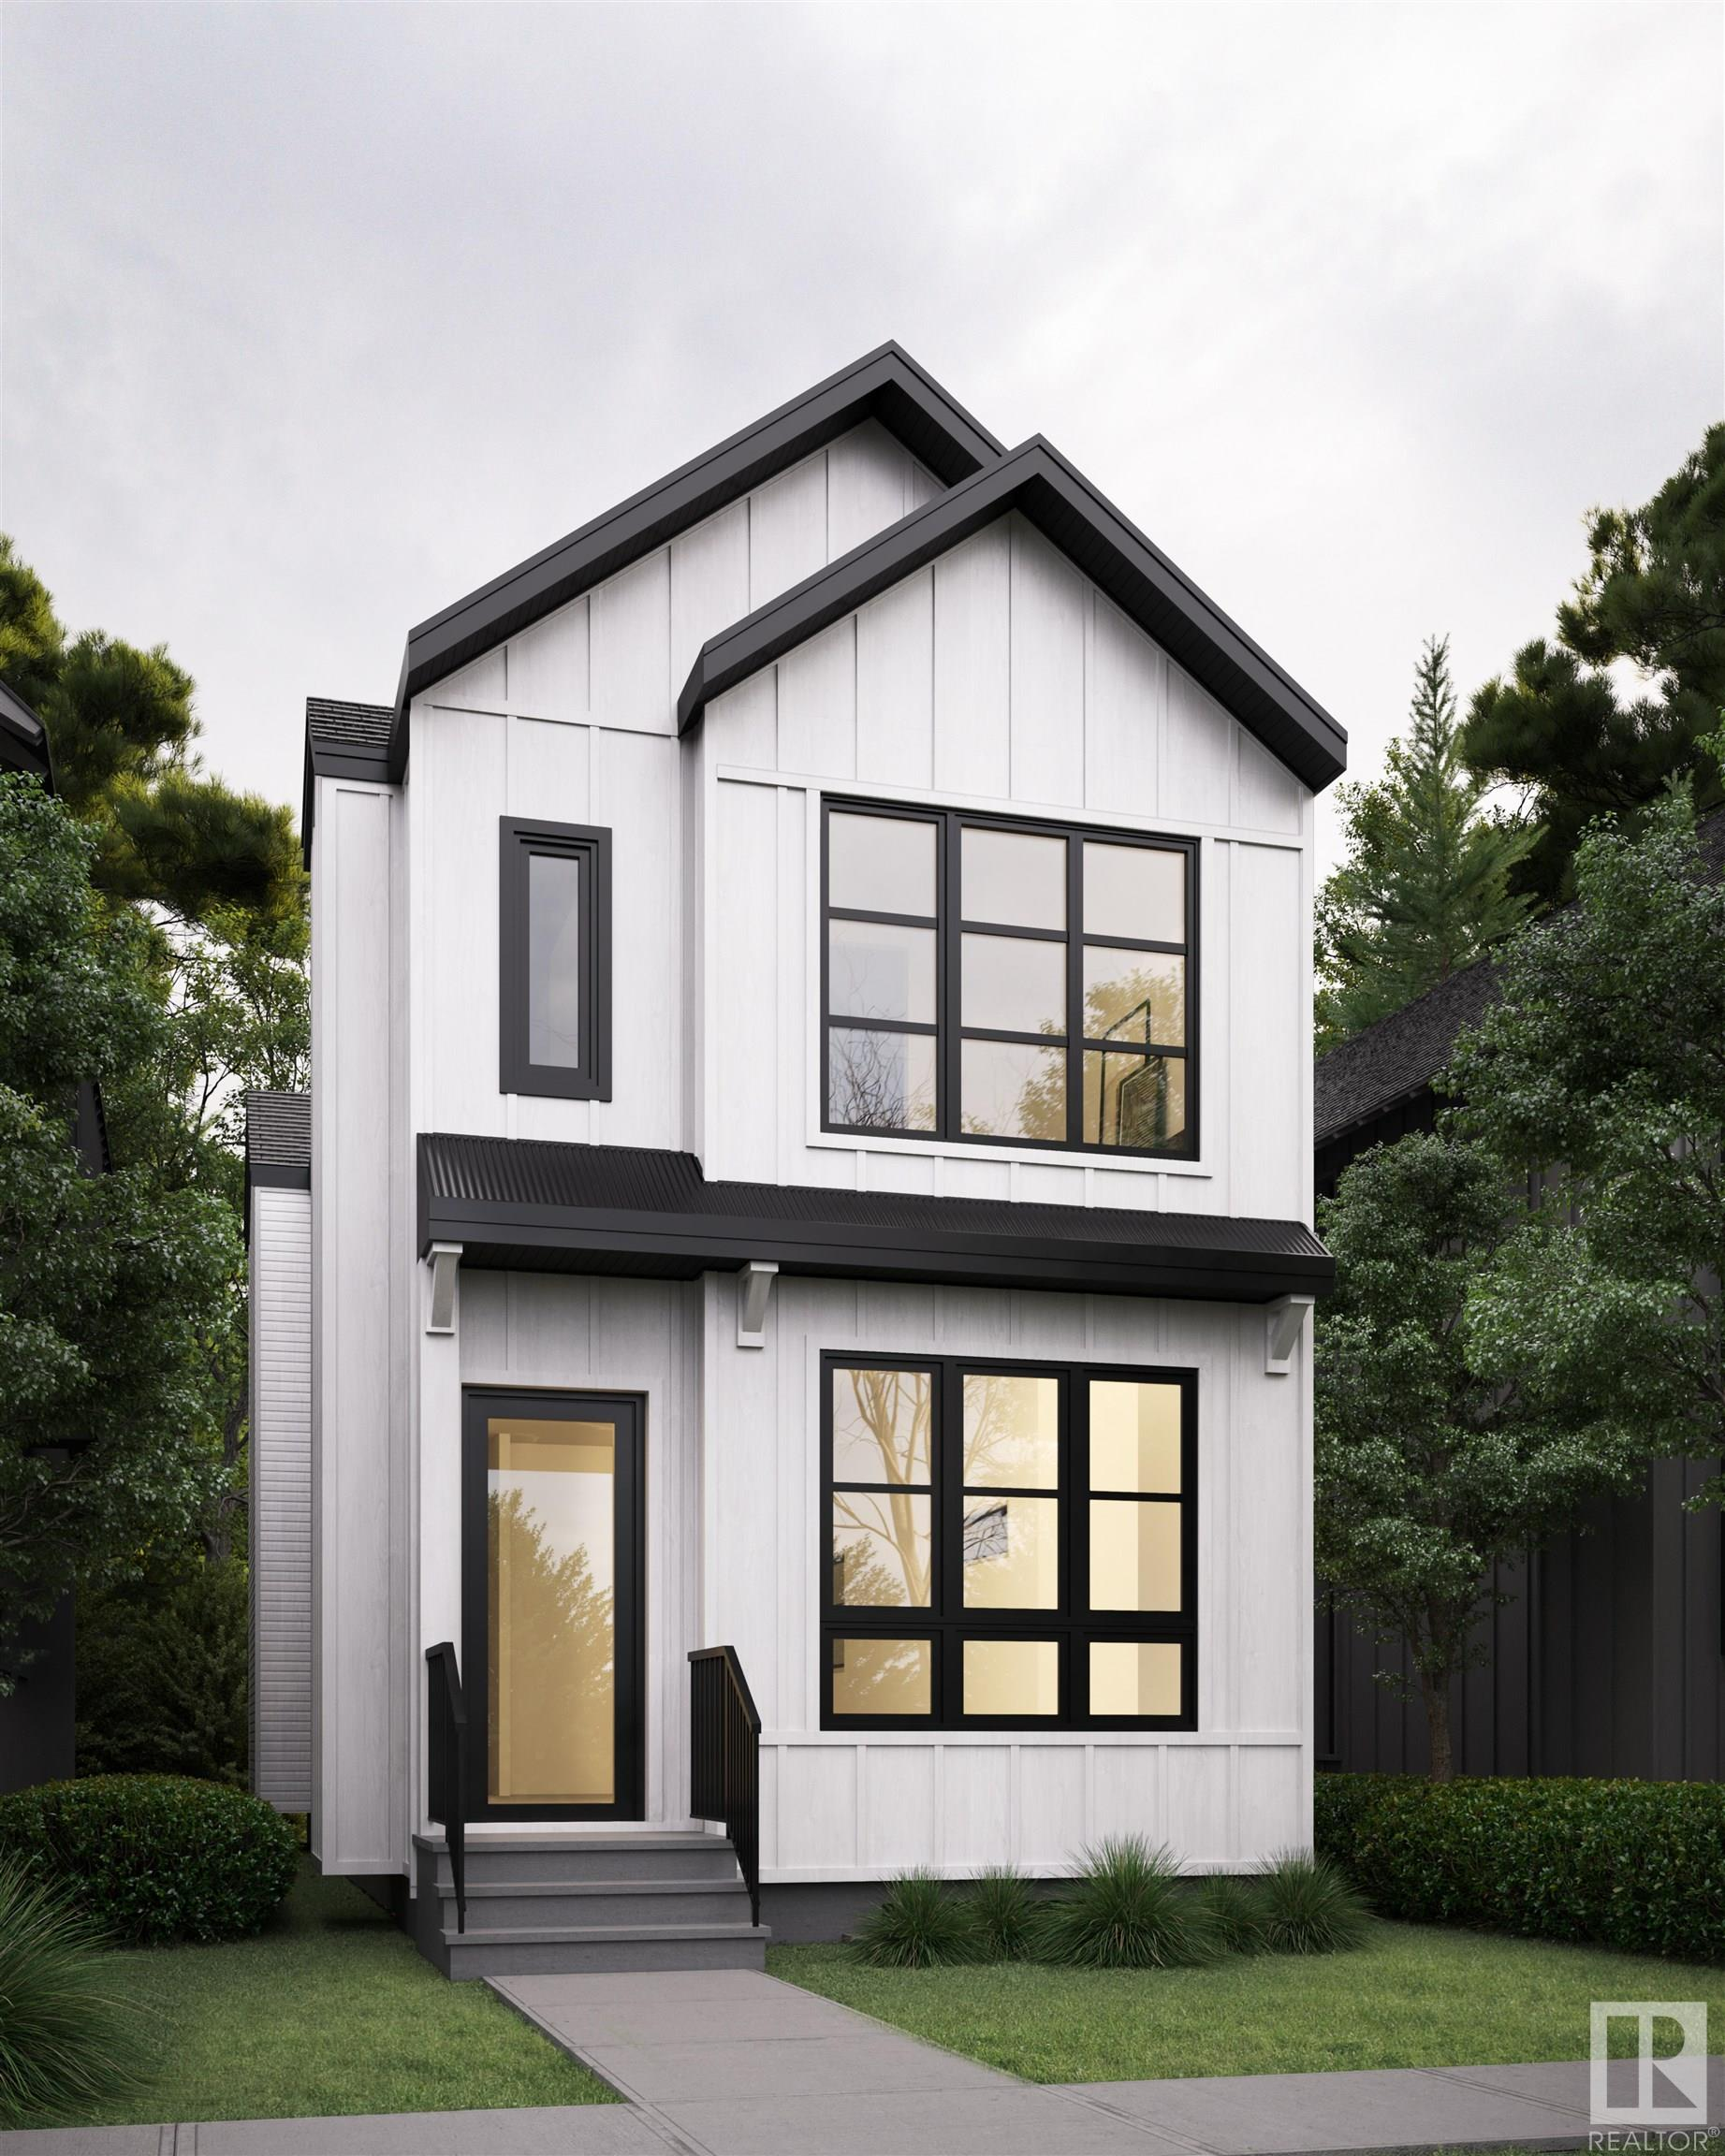 Legal suite & side entrance! Modern, Stunning and Sleek with 10' ceilings. This beautiful home is situated along a matured tree lined street in the community of Idylwylde. Minutes to downtown, & walking distance to the future LRT station, upcoming Bonnie Doon Mall re-development, schools & parks. Attention to detail finishes with many upgrades such as:  railing, 10' ceilings, bar area, huge windows, mudroom, upto ceiling kitchen cabinets loaded with quartz countertops & stainless steel appliances, big island, linear fireplace, hardwood flooring, maintenance free exterior. 2nd floor features 2 beds and a MSTR Bed with a custom closet & gorgeous spa like ensuite, 2nd floor laundry completes the floor plan. Exterior upgrades include big windows, and the house wrapped with premium cladding. Double garage. LEGAL SUITE: with kitchen, 1 bed, full bath, living room and laundry room. Images are from previous home home with similar or better finishes.